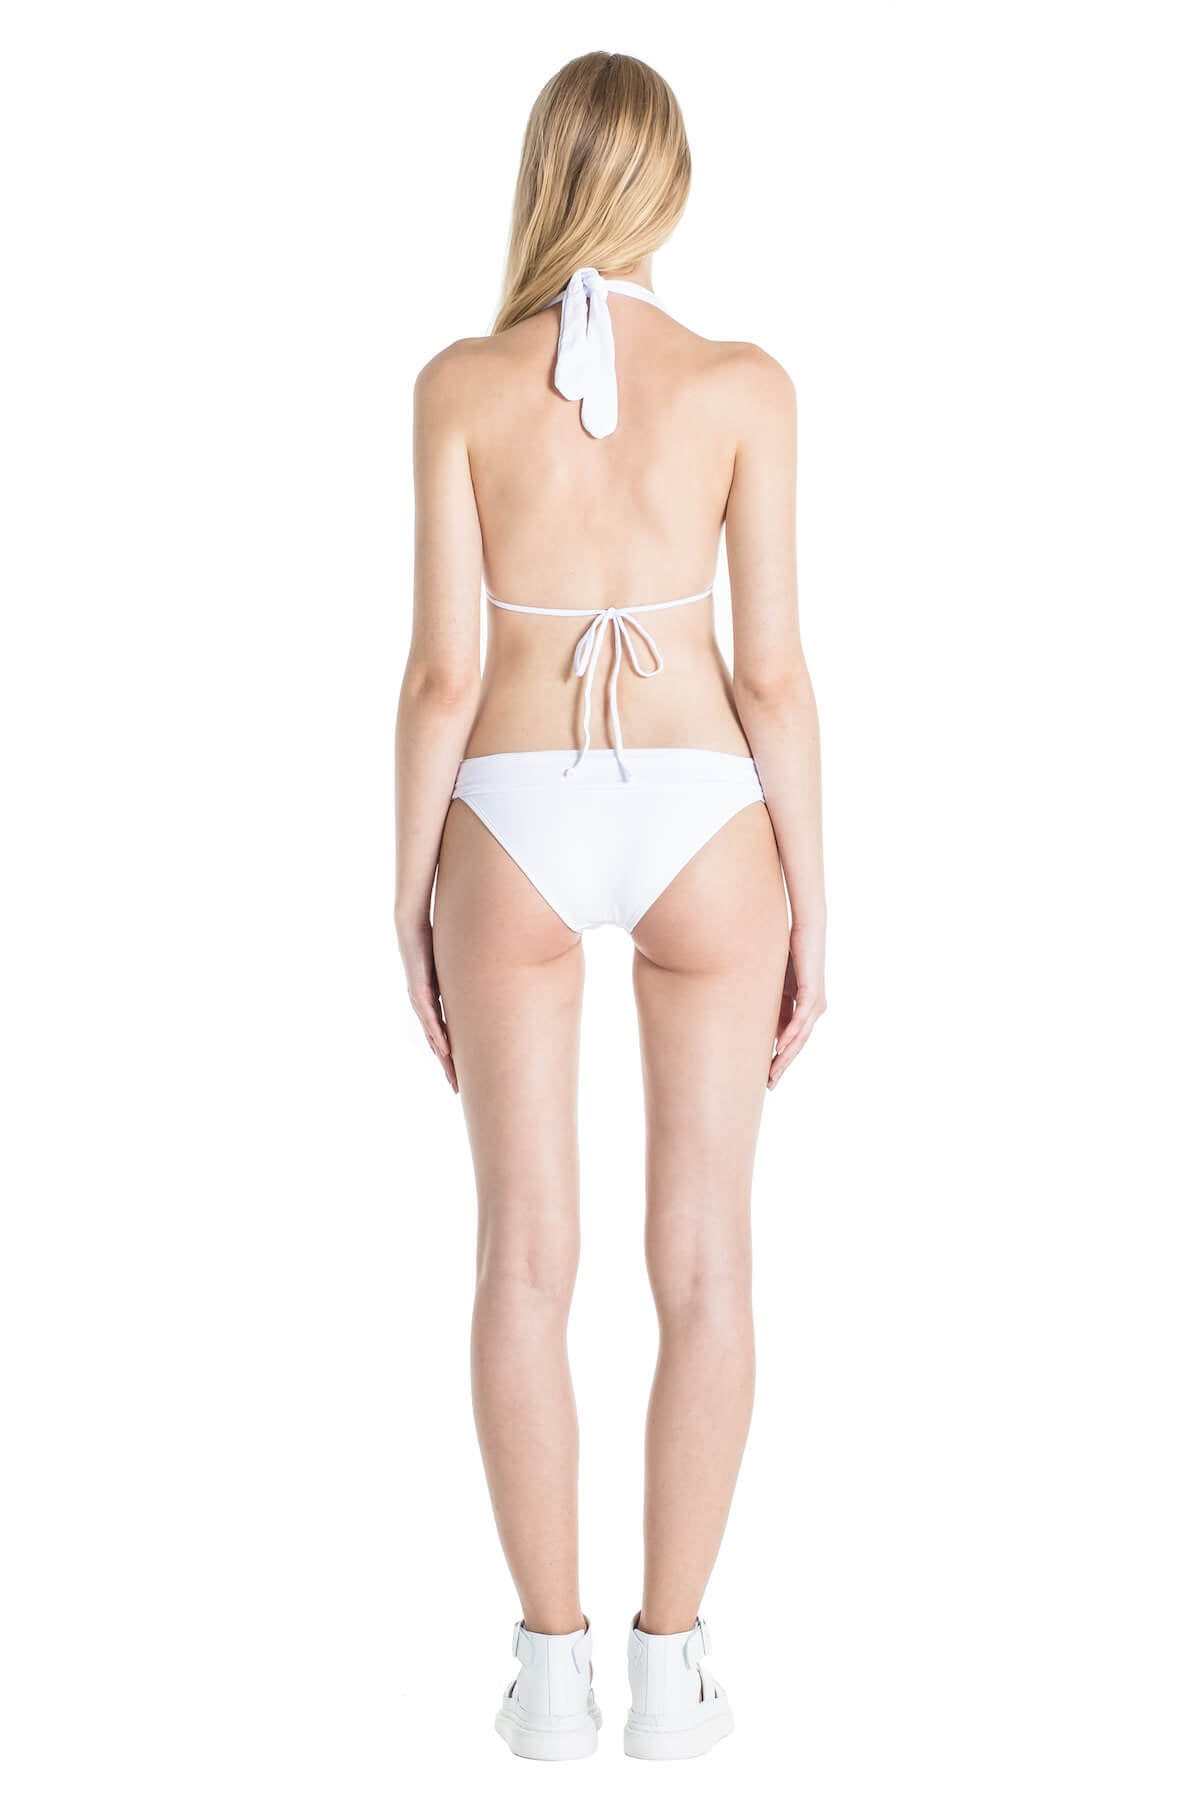 Image of the back of model wearing the Nina white bathing suit.